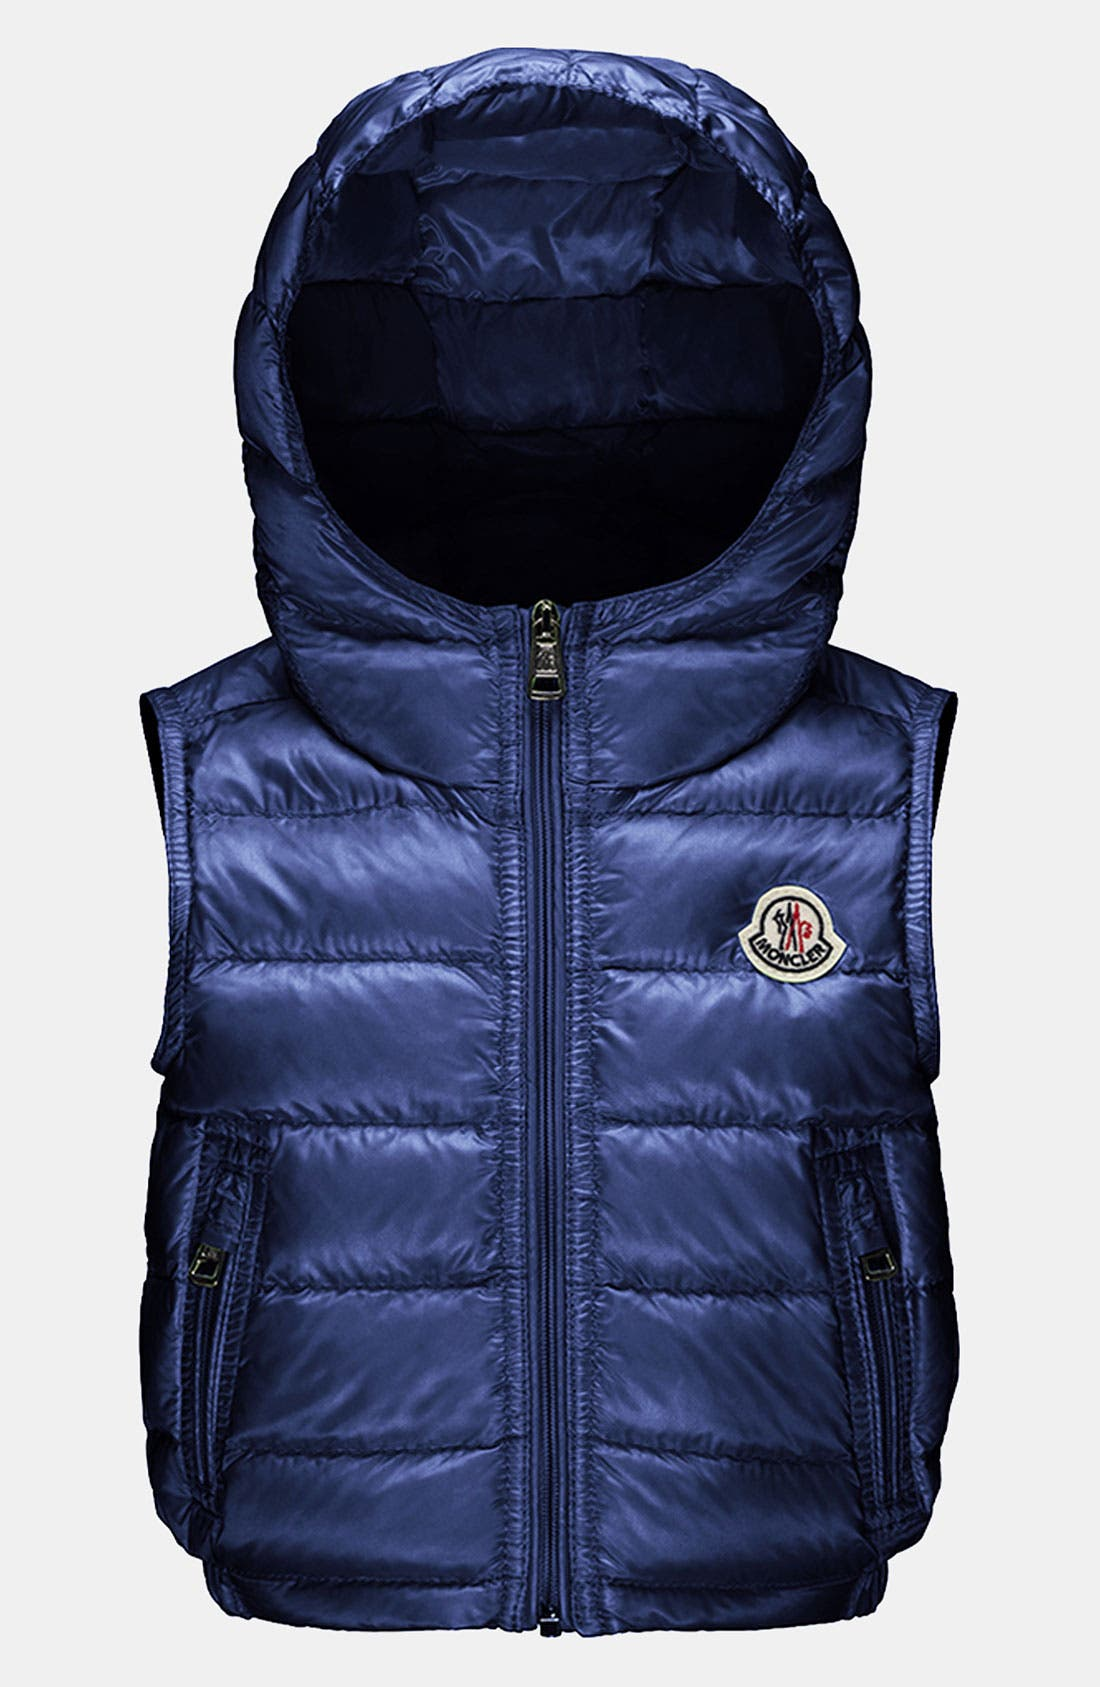 Alternate Image 1 Selected - Moncler 'Patrick' Hooded Vest (Baby)